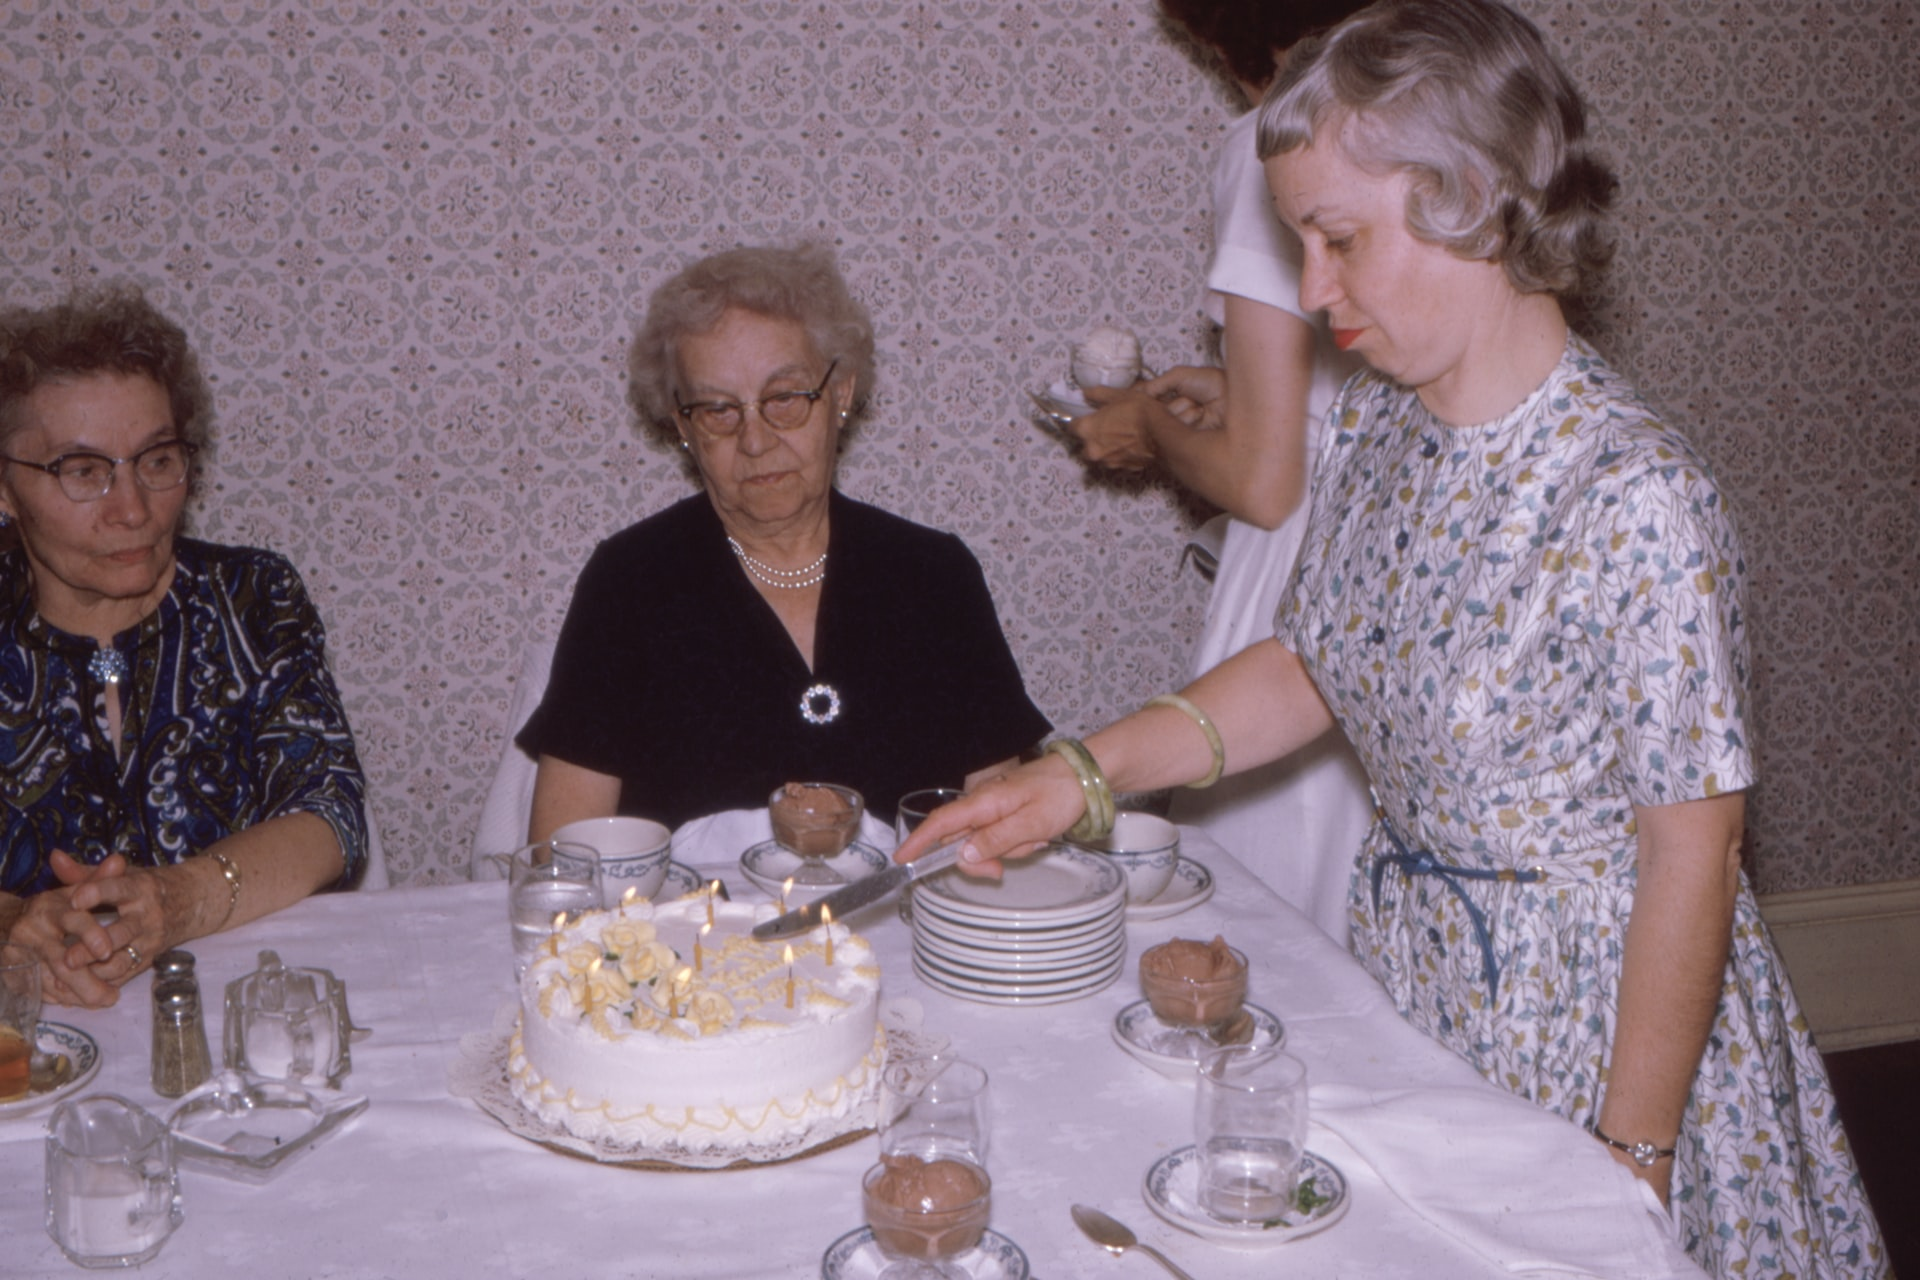 vintage photo of family with birthday cake